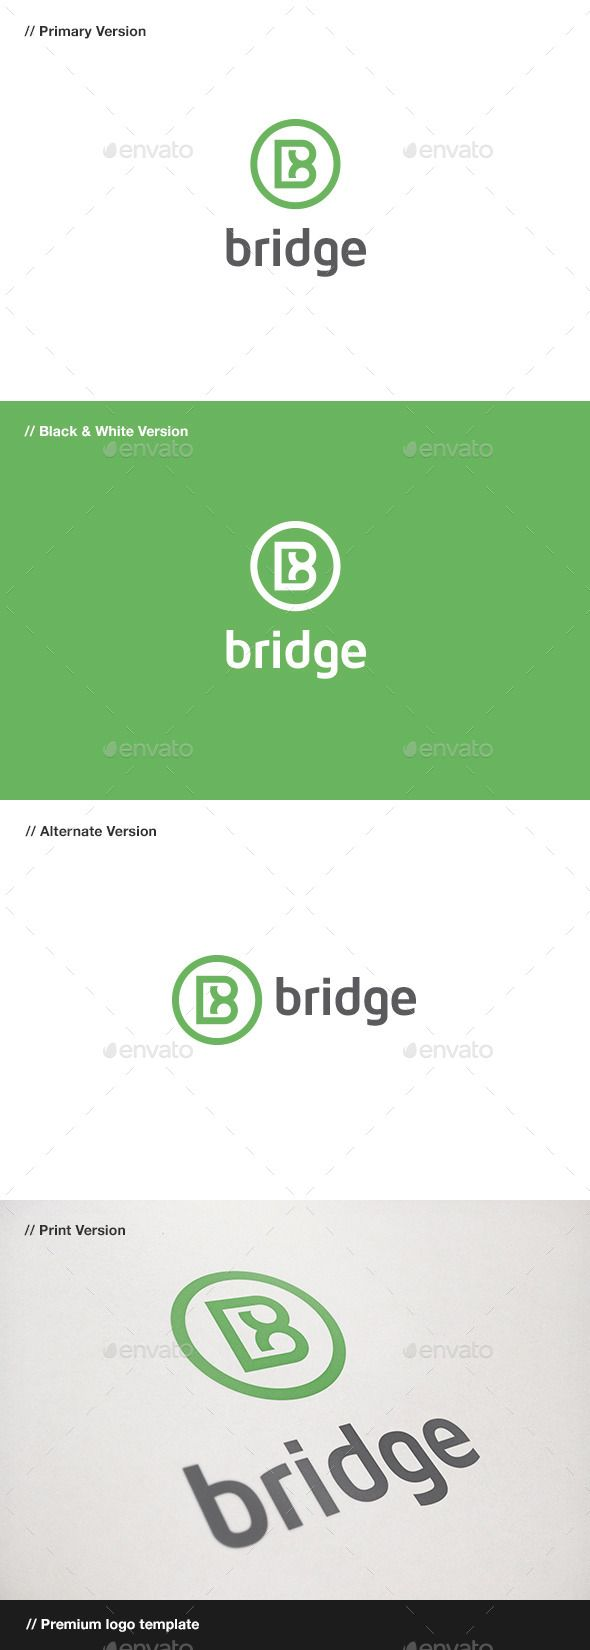 Bridge: Letter B Logo by domibit Bridge: is a logo that can be used by design professionals and photography for corporate companies, banks, among other uses. Its d